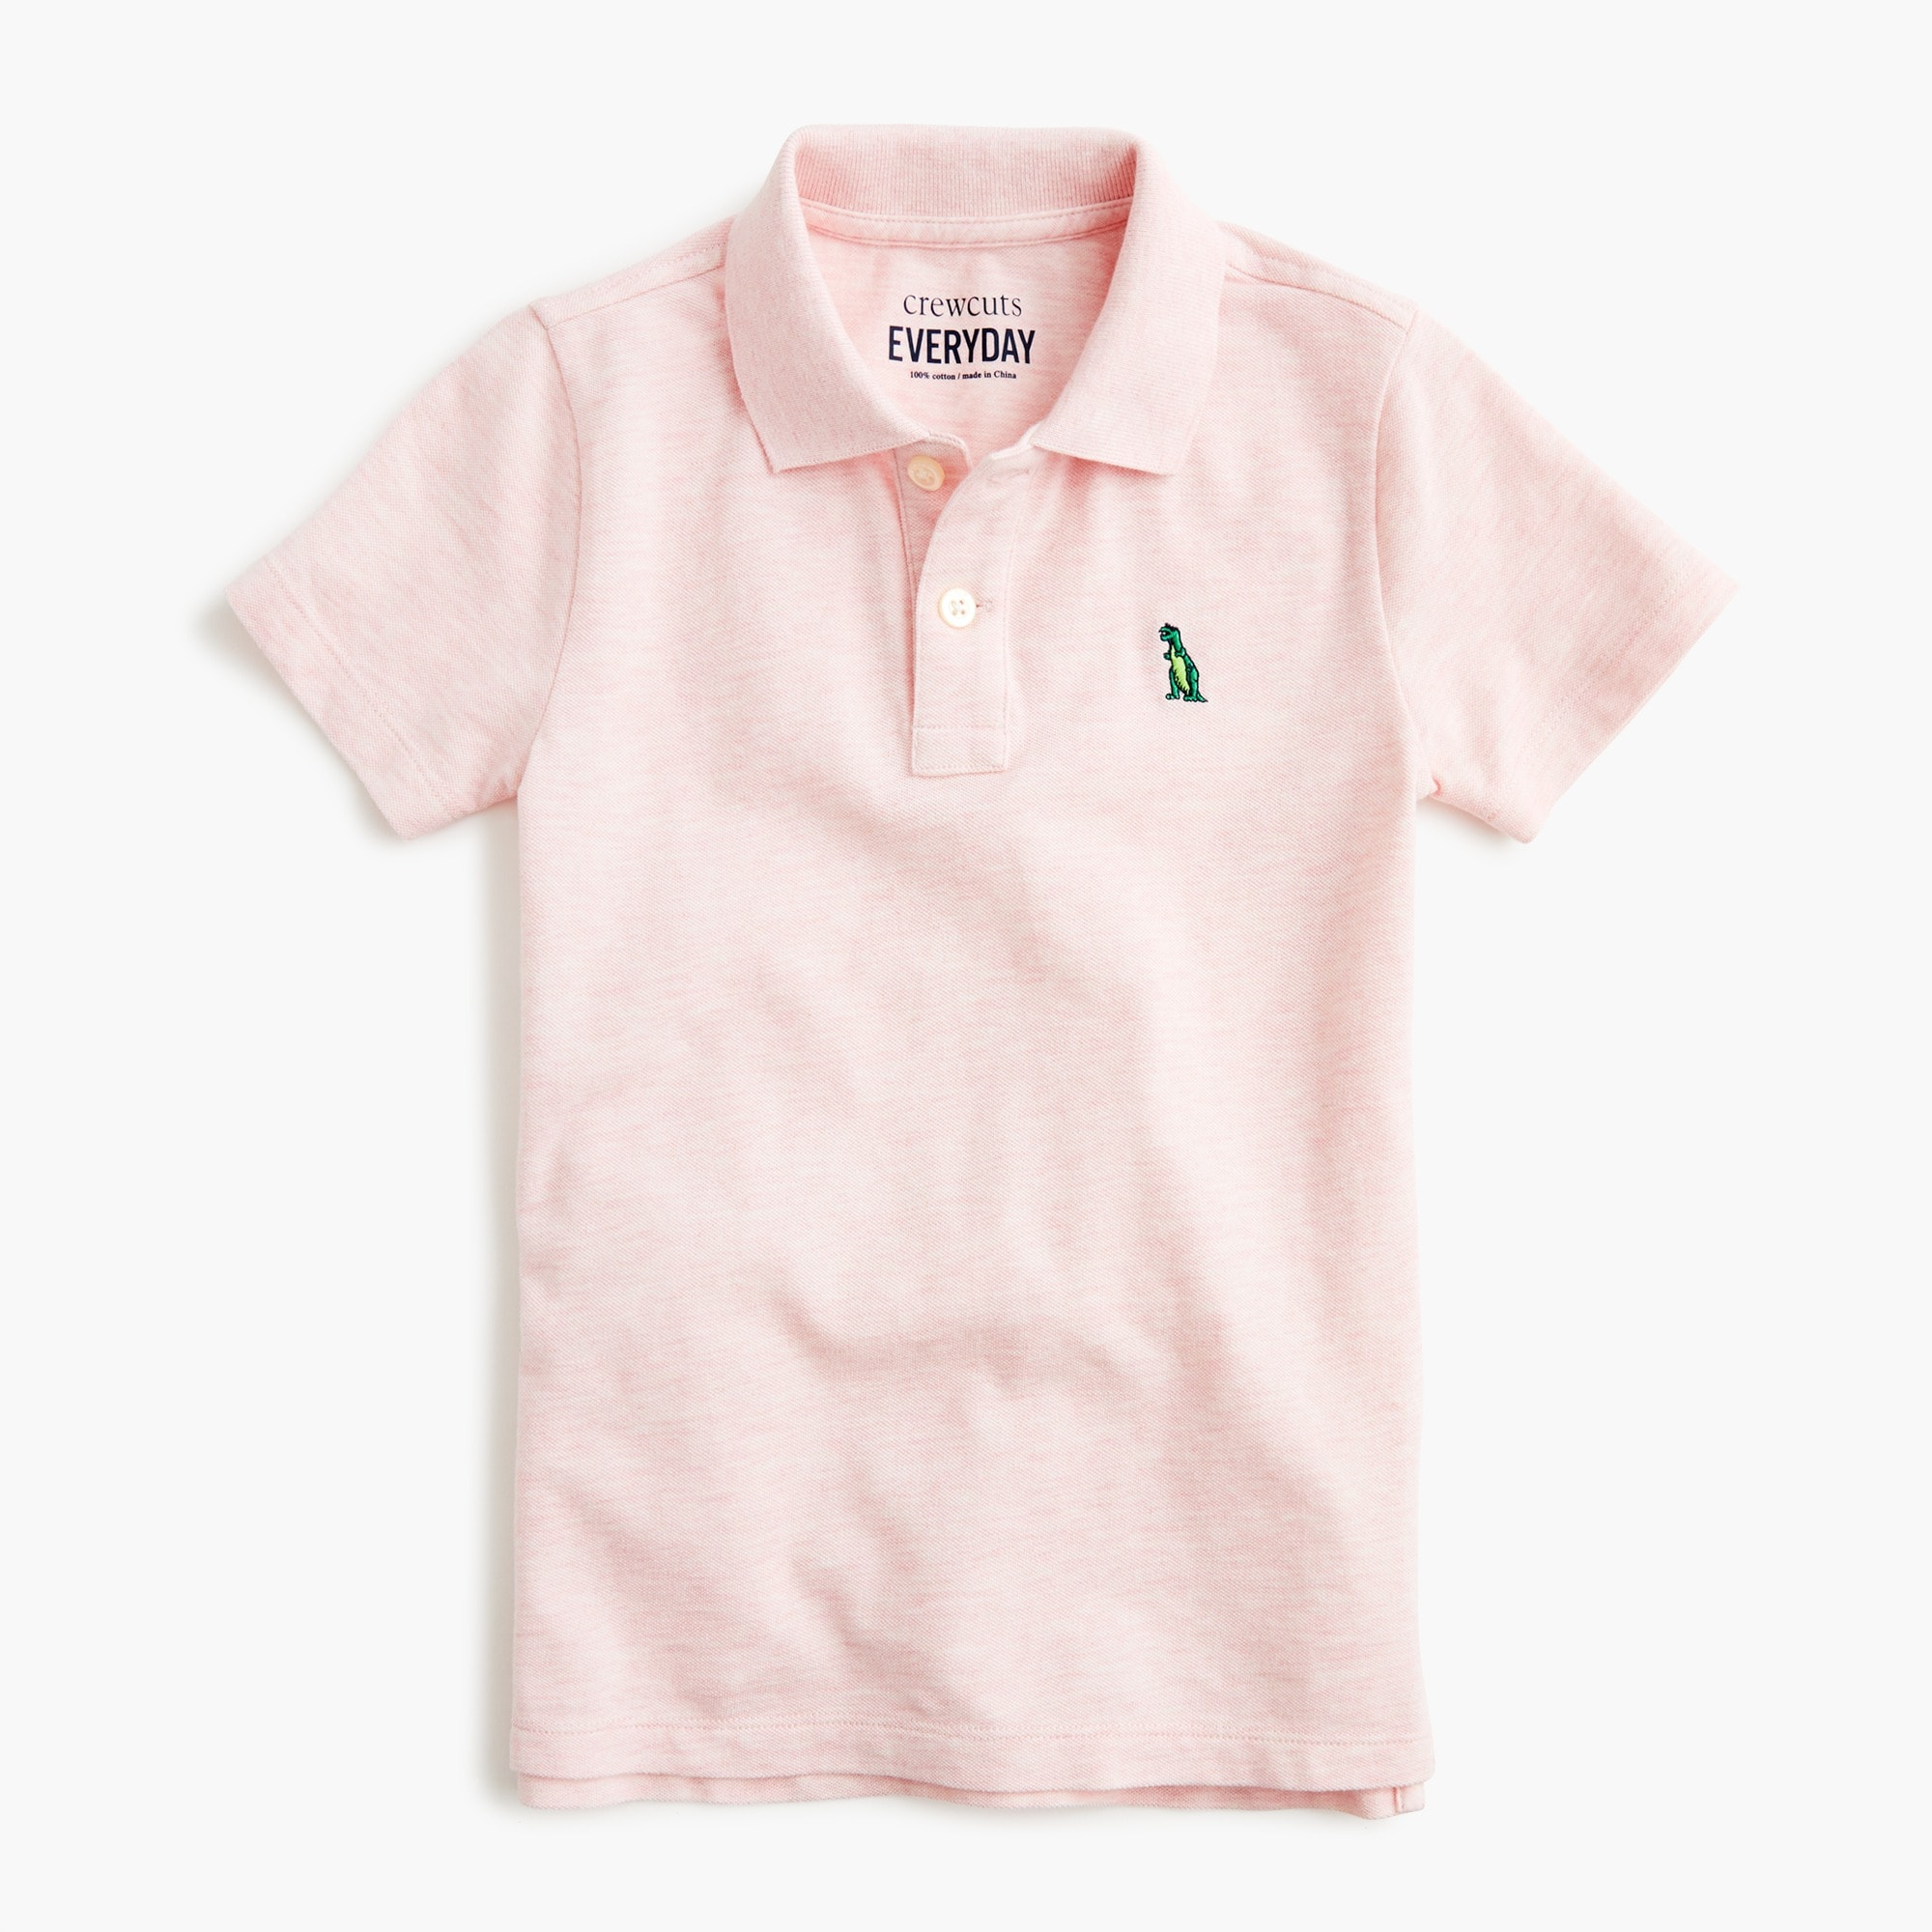 Boys' critter polo shirt boy new arrivals c